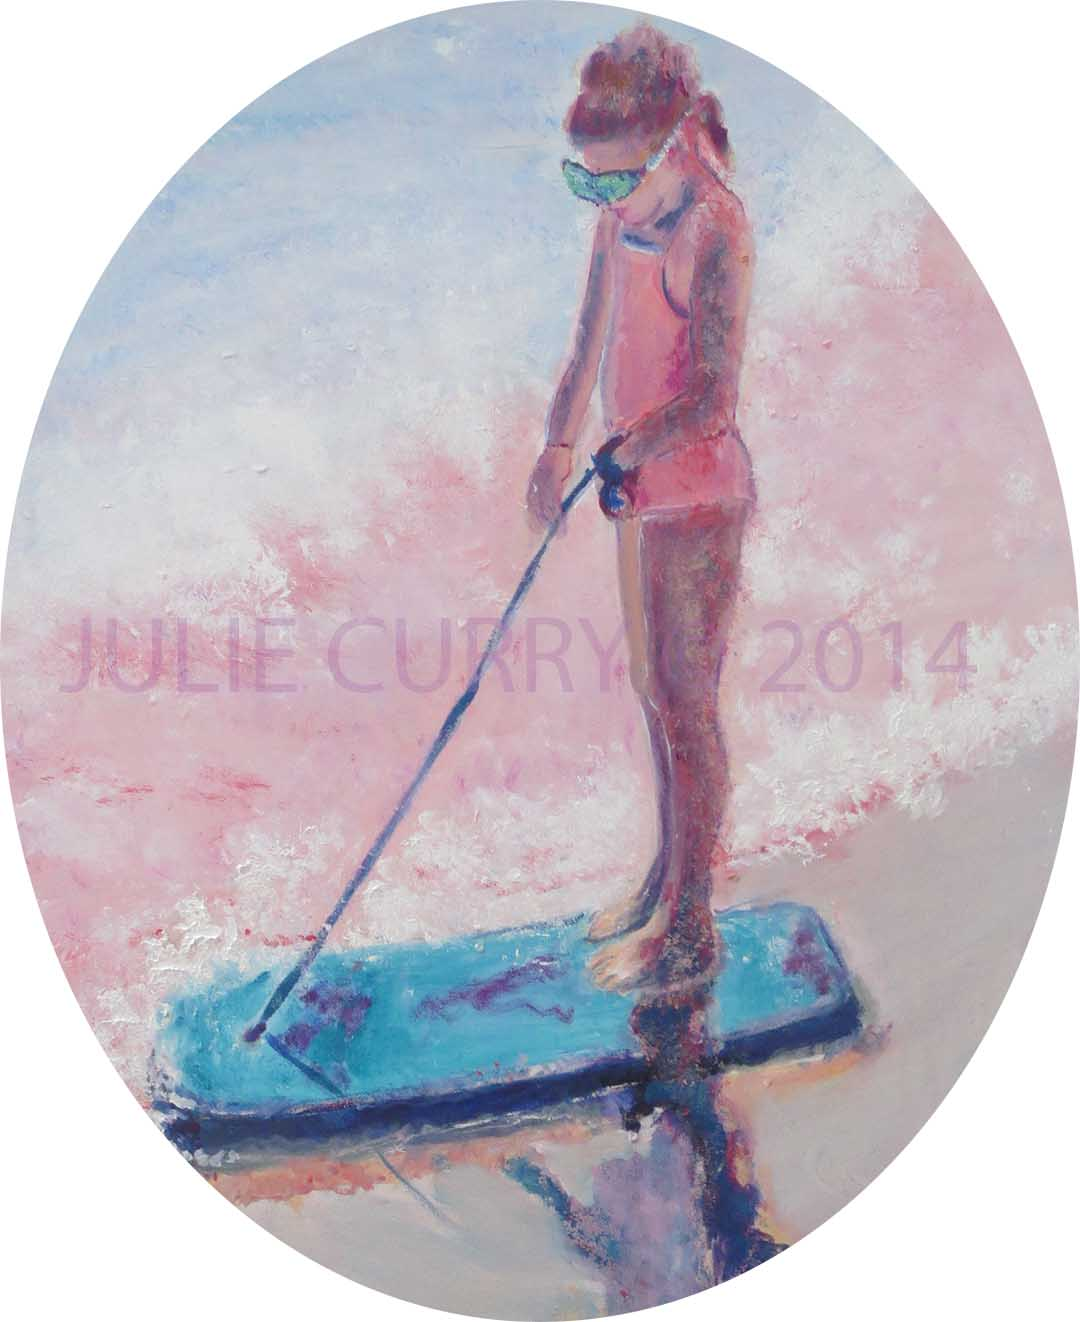 An oil painting portrait of a girl and her bodyboard by Julie Curry an oil painter